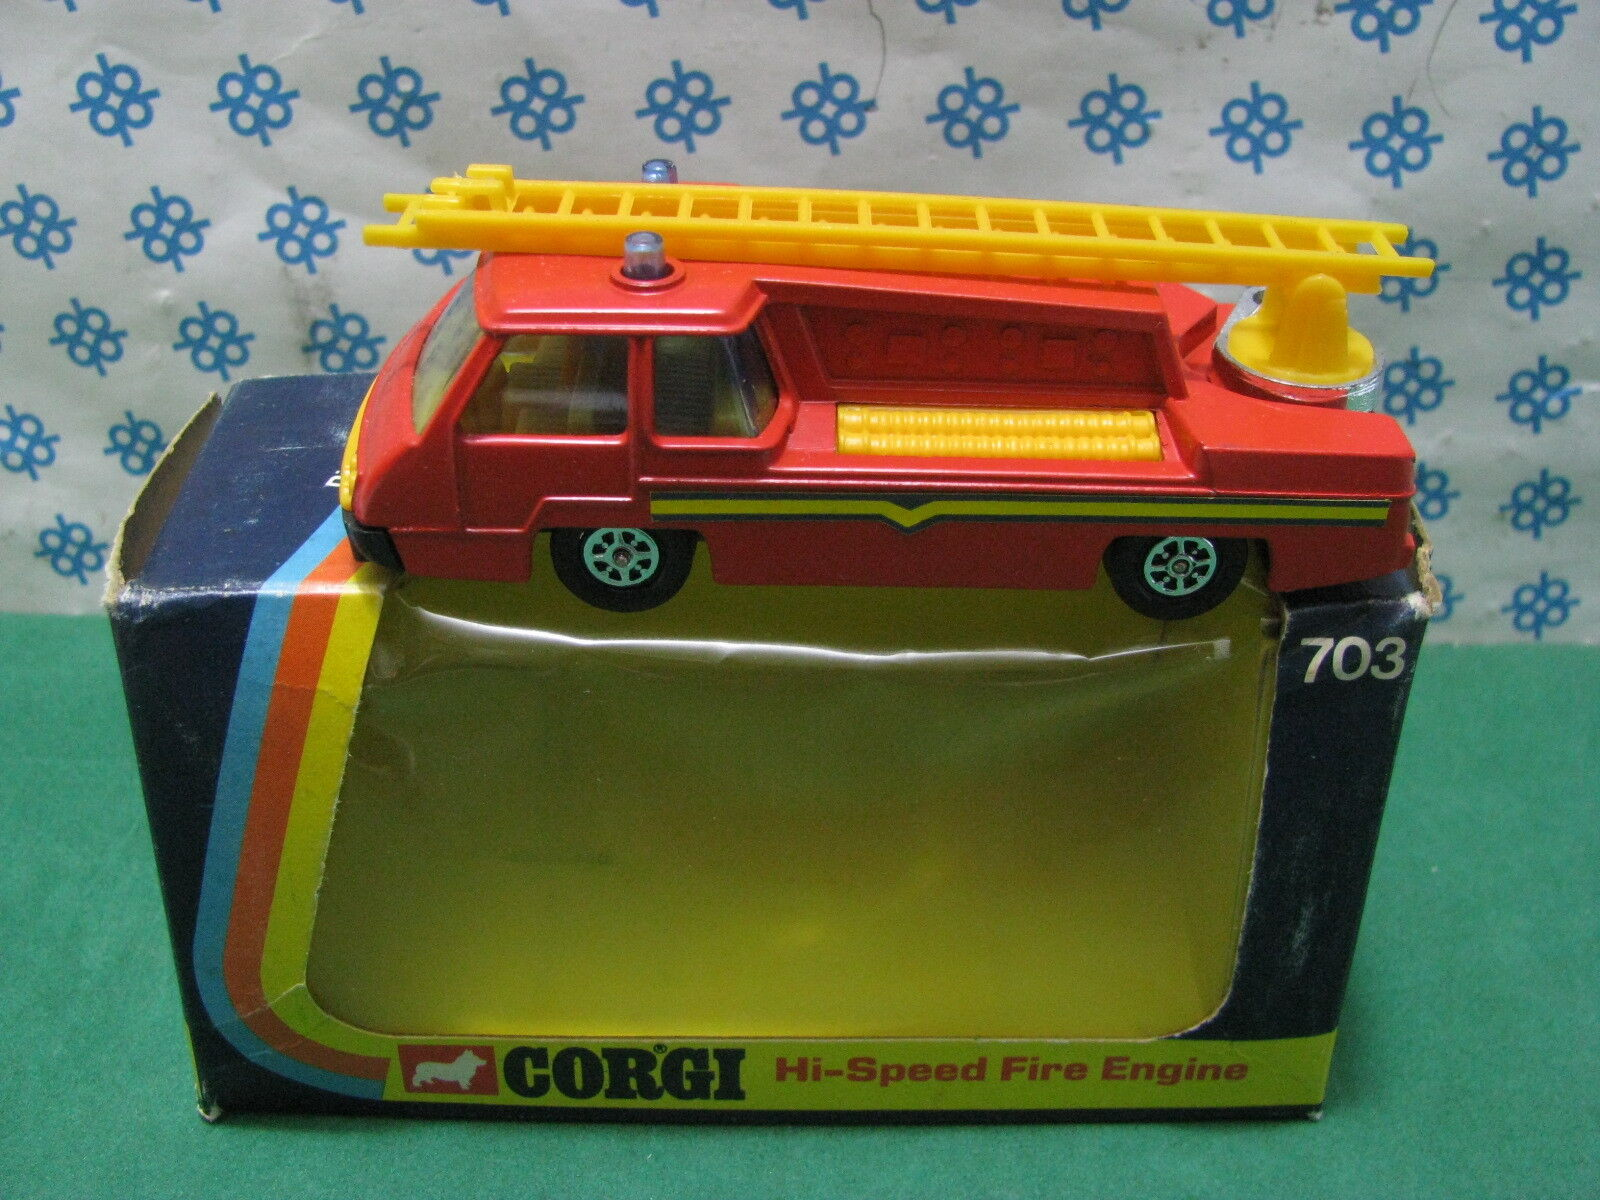 Vintage Corgi Juguetes 703  -   FIRE  ENGINE    -  Made in Gt. Britain 1975